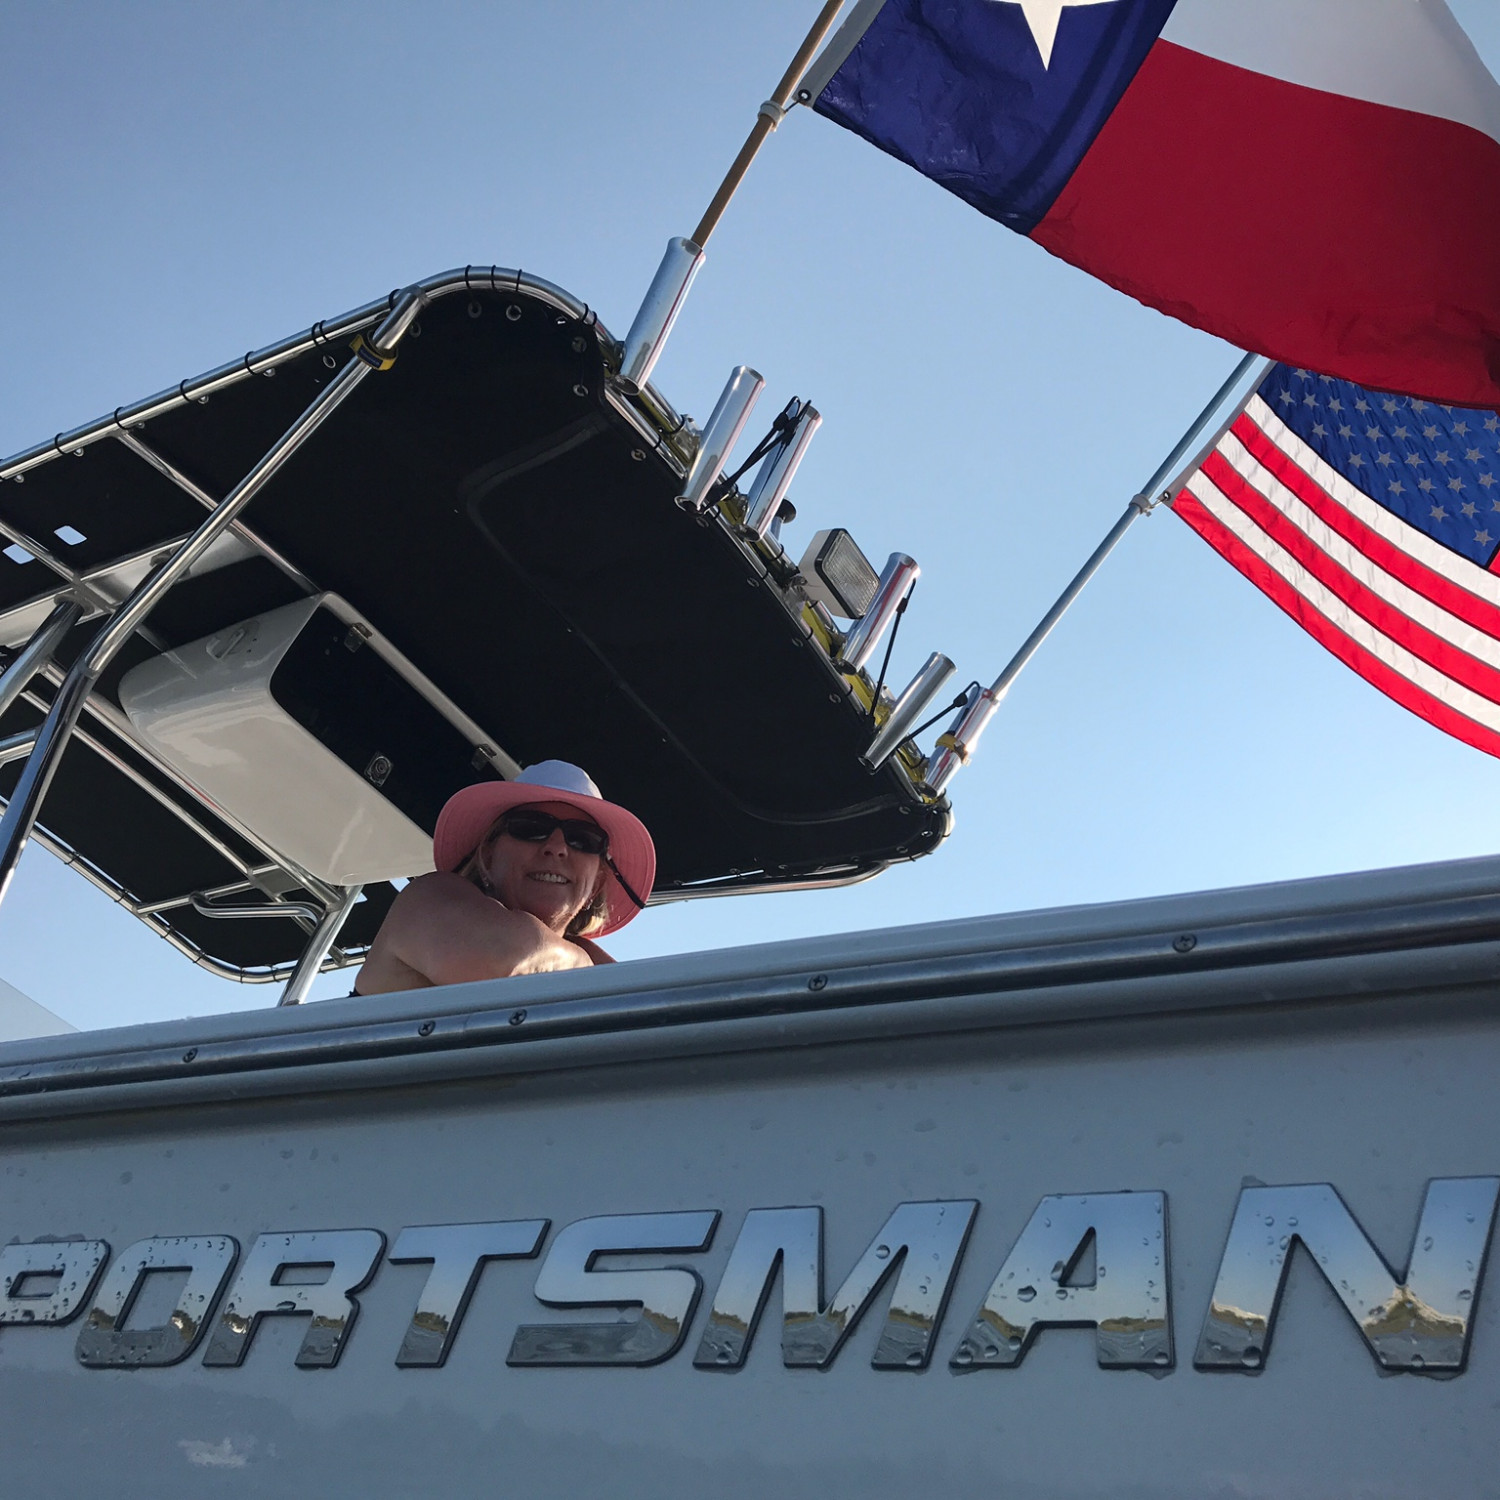 Title: My Two Faves - On board their Sportsman Masters 227 Bay Boat - Location: Clear Lake, Texas. Participating in the Photo Contest #SportsmanNovember2017